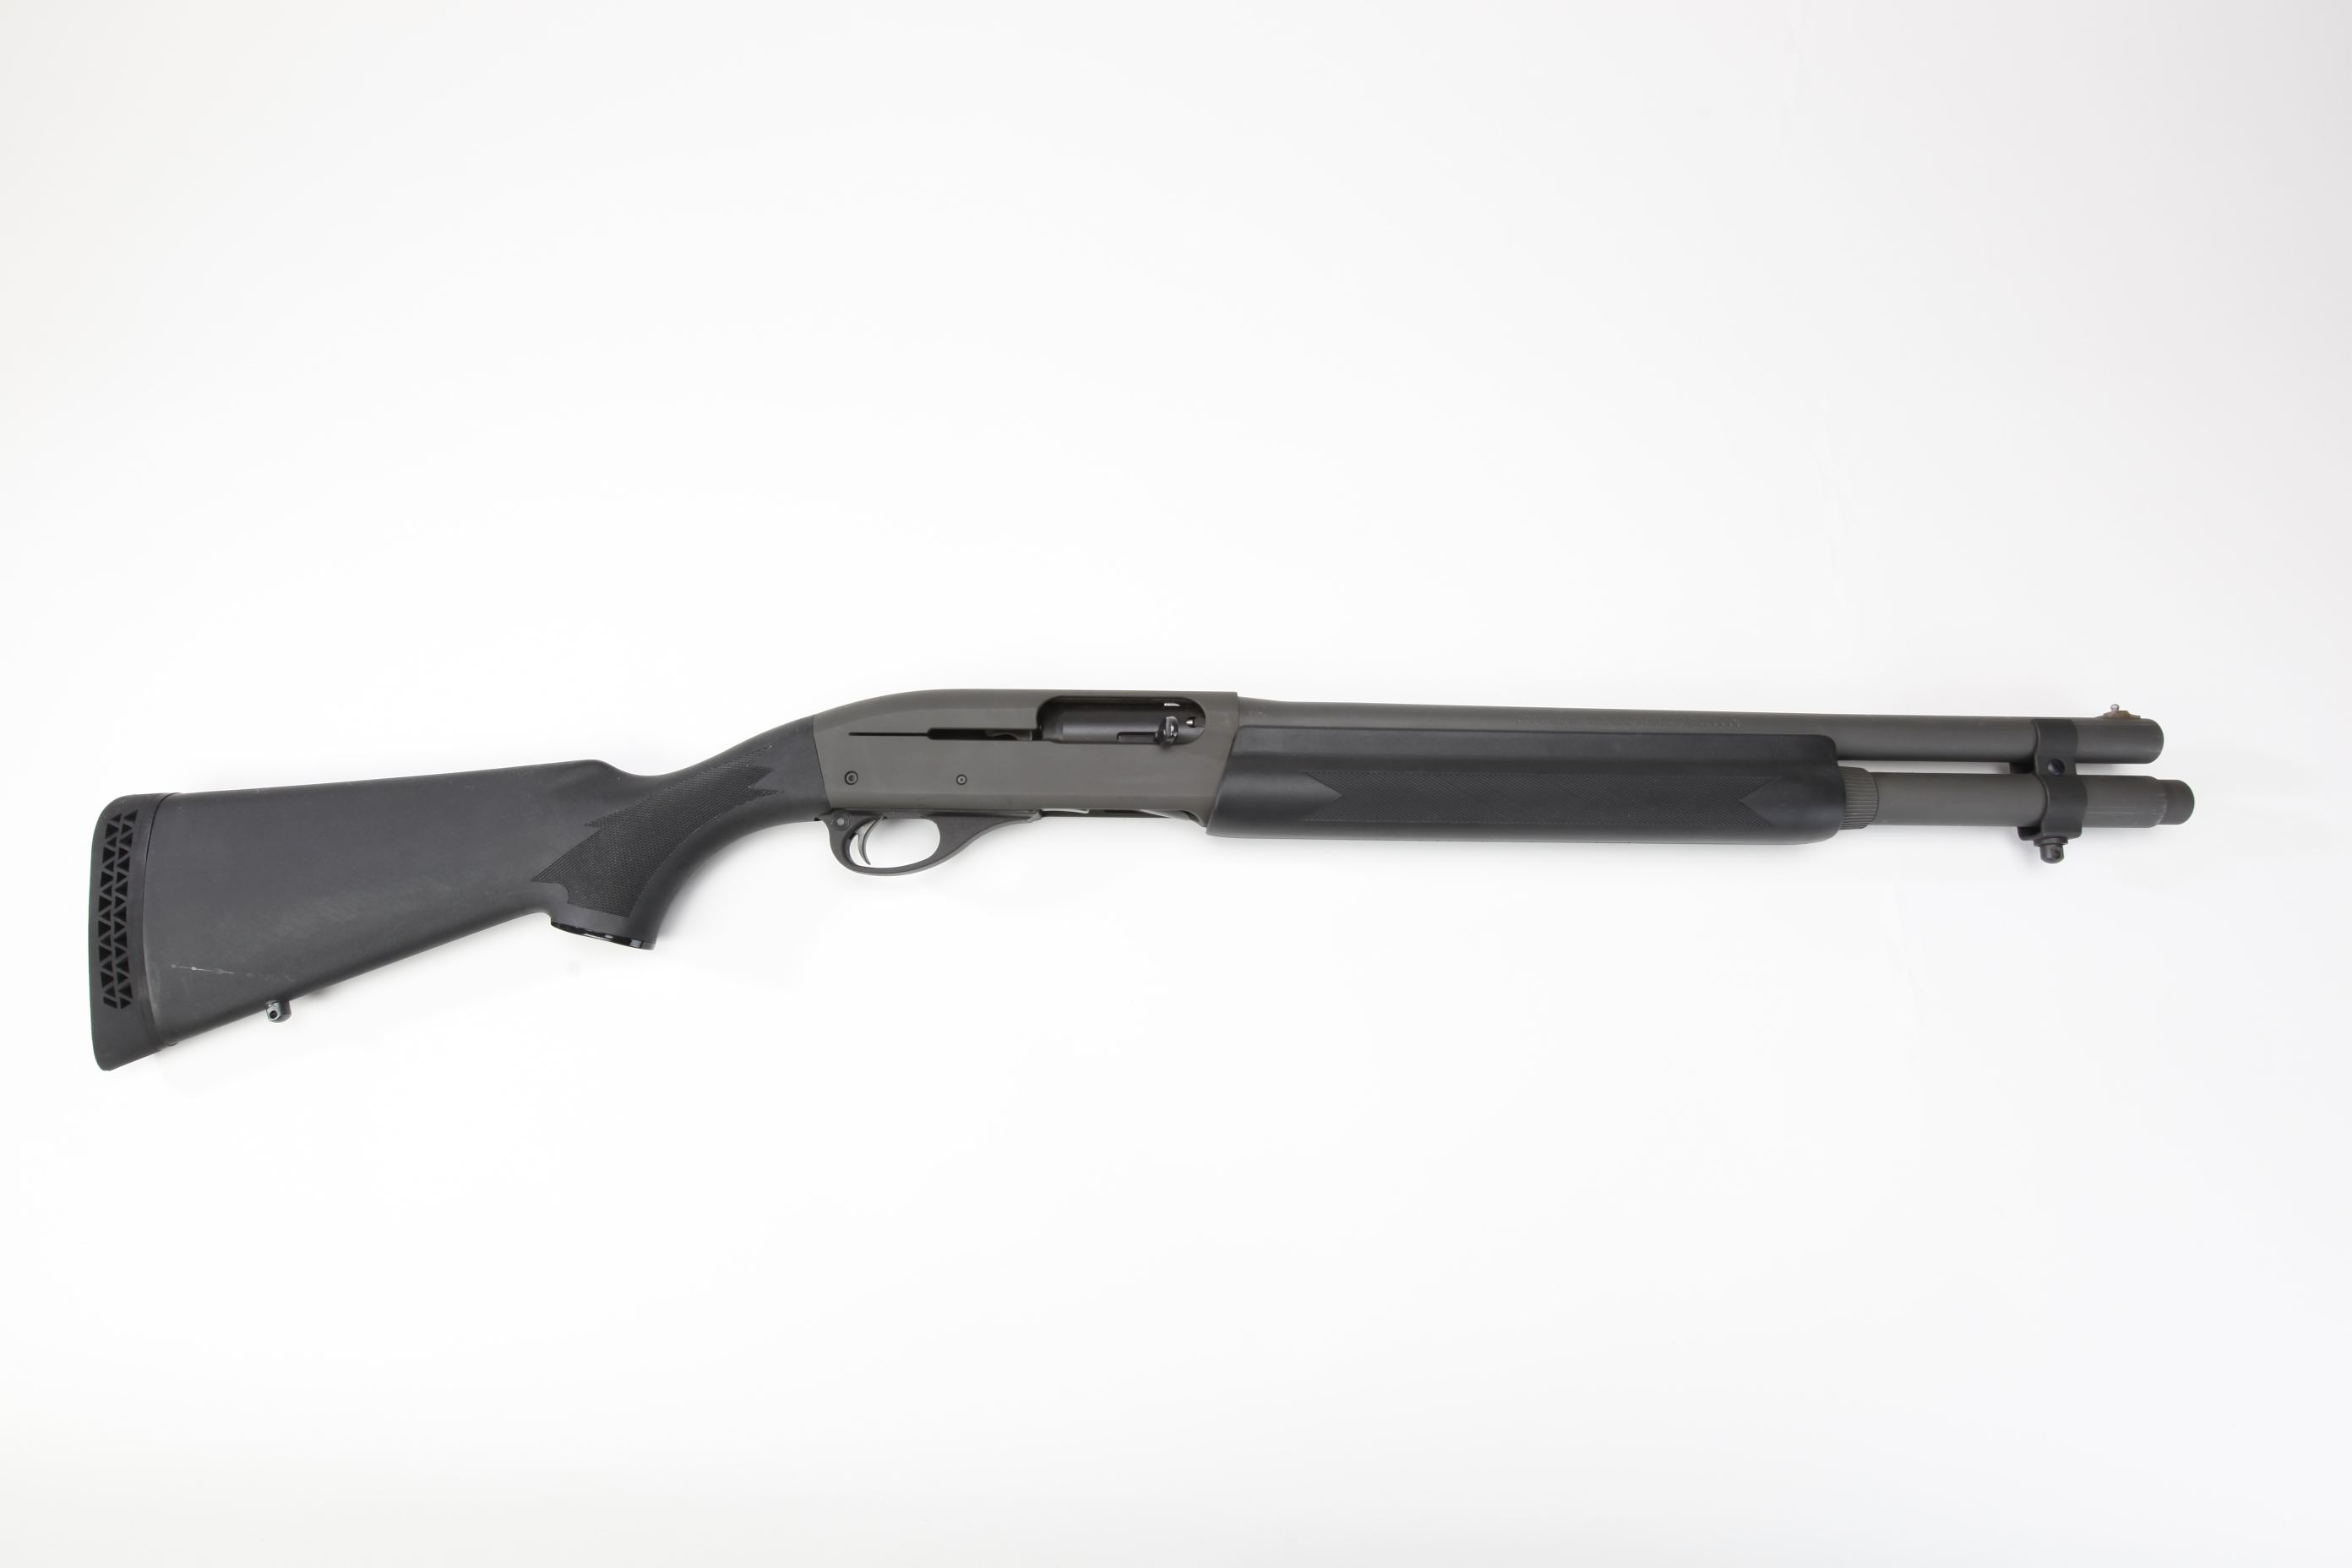 Remington 11 87 Police Shotgun